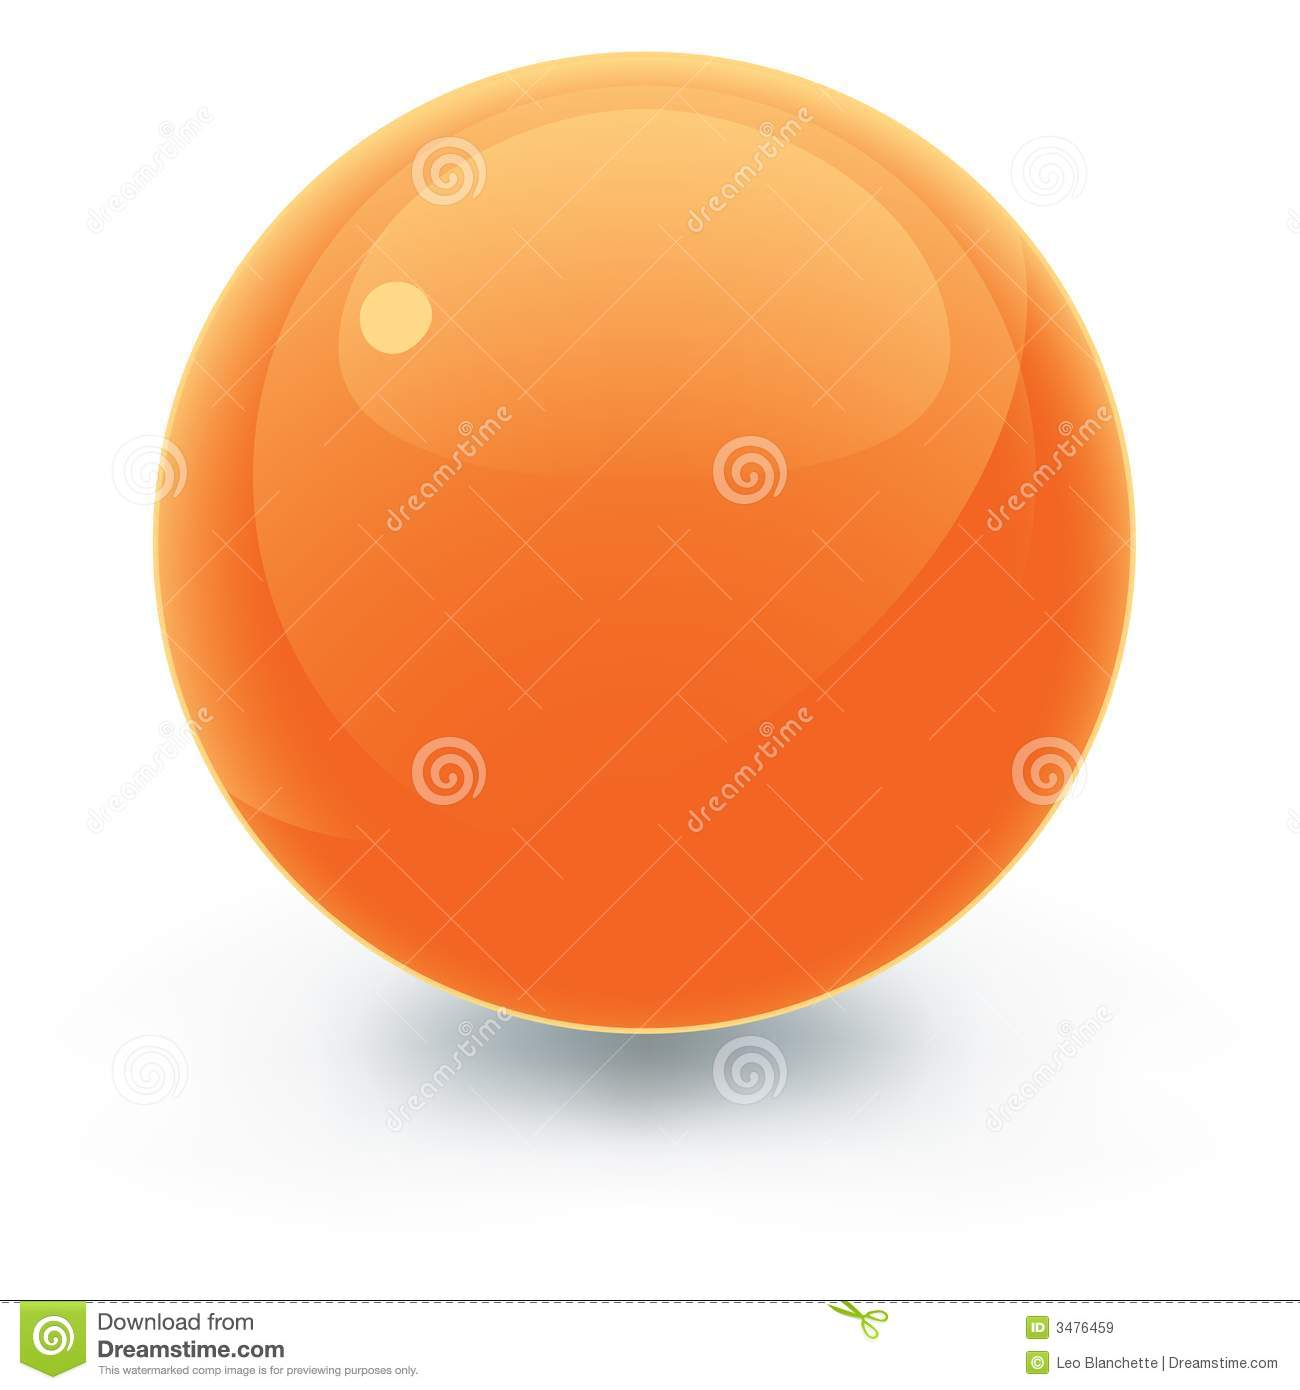 Solid Orange Pool Ball Royalty Free Stock Images Image